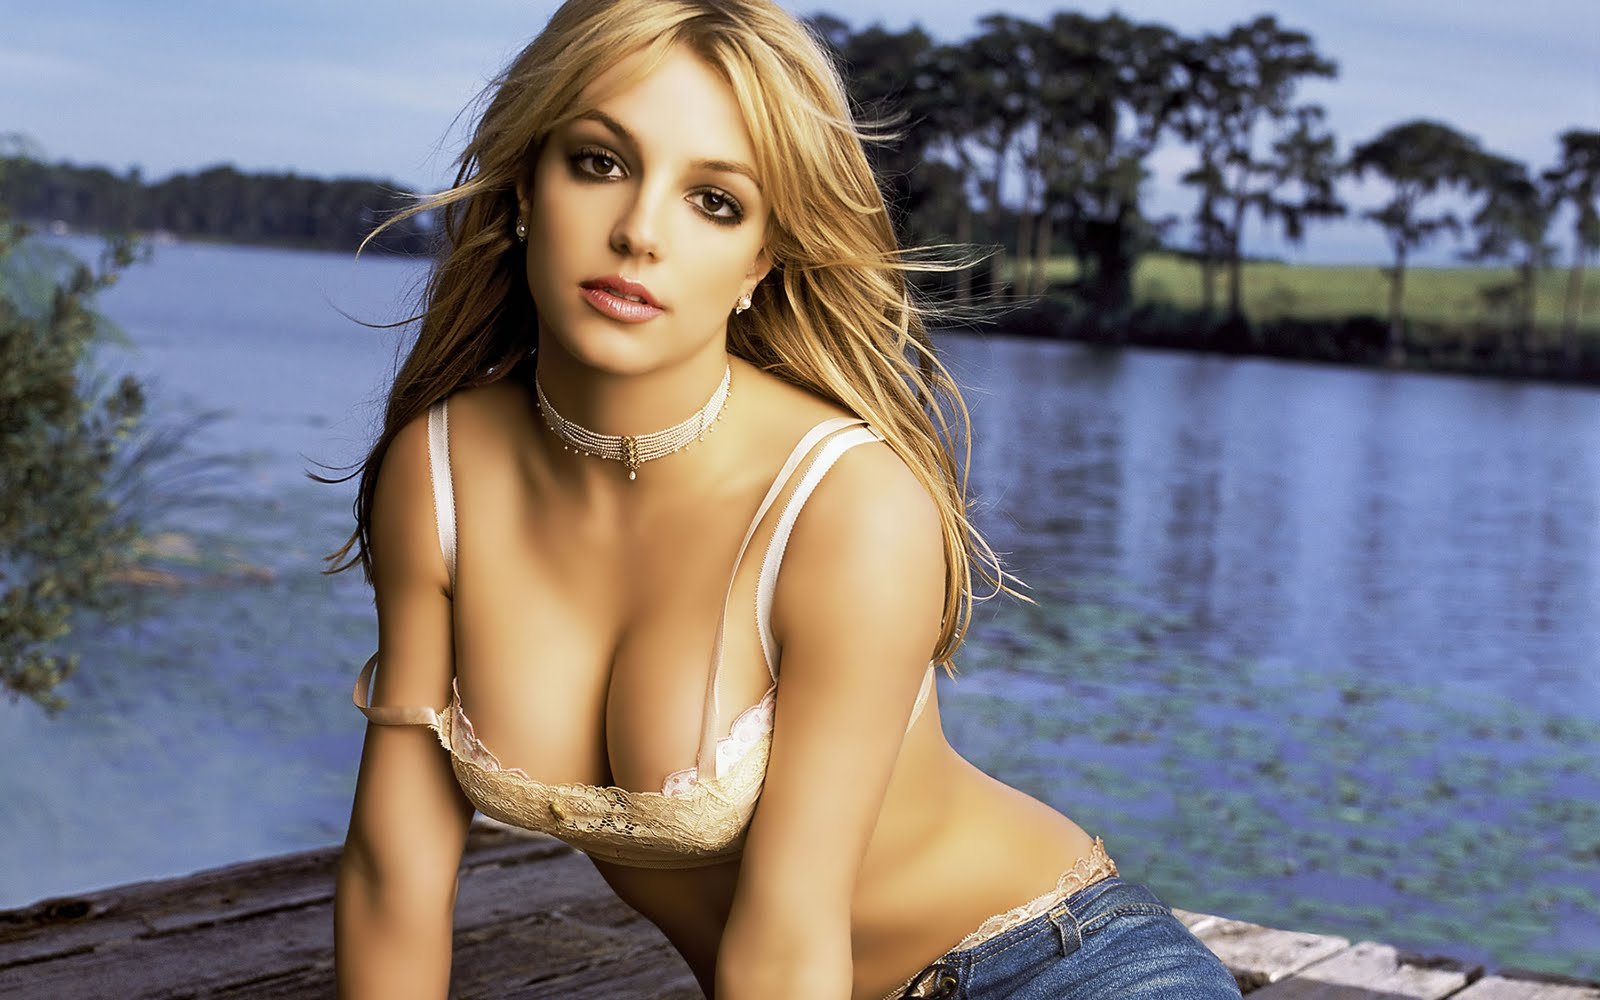 http://1.bp.blogspot.com/-FKHHzbyS7x4/TZDNQa1p0sI/AAAAAAAAHvk/Wvp7vogJC3U/s1600/1The-best-top-desktop-britney-spears-wallpapers-Hottest%2BBritney%2BSpears%2BHD%2BDesktop%2Bwallpapers-hot-nude-sexy-topless-britney-spears-hd-wallpapers-global-top-actress-nude-sexy-big-ass-big-boobs-actress-model-.jpg